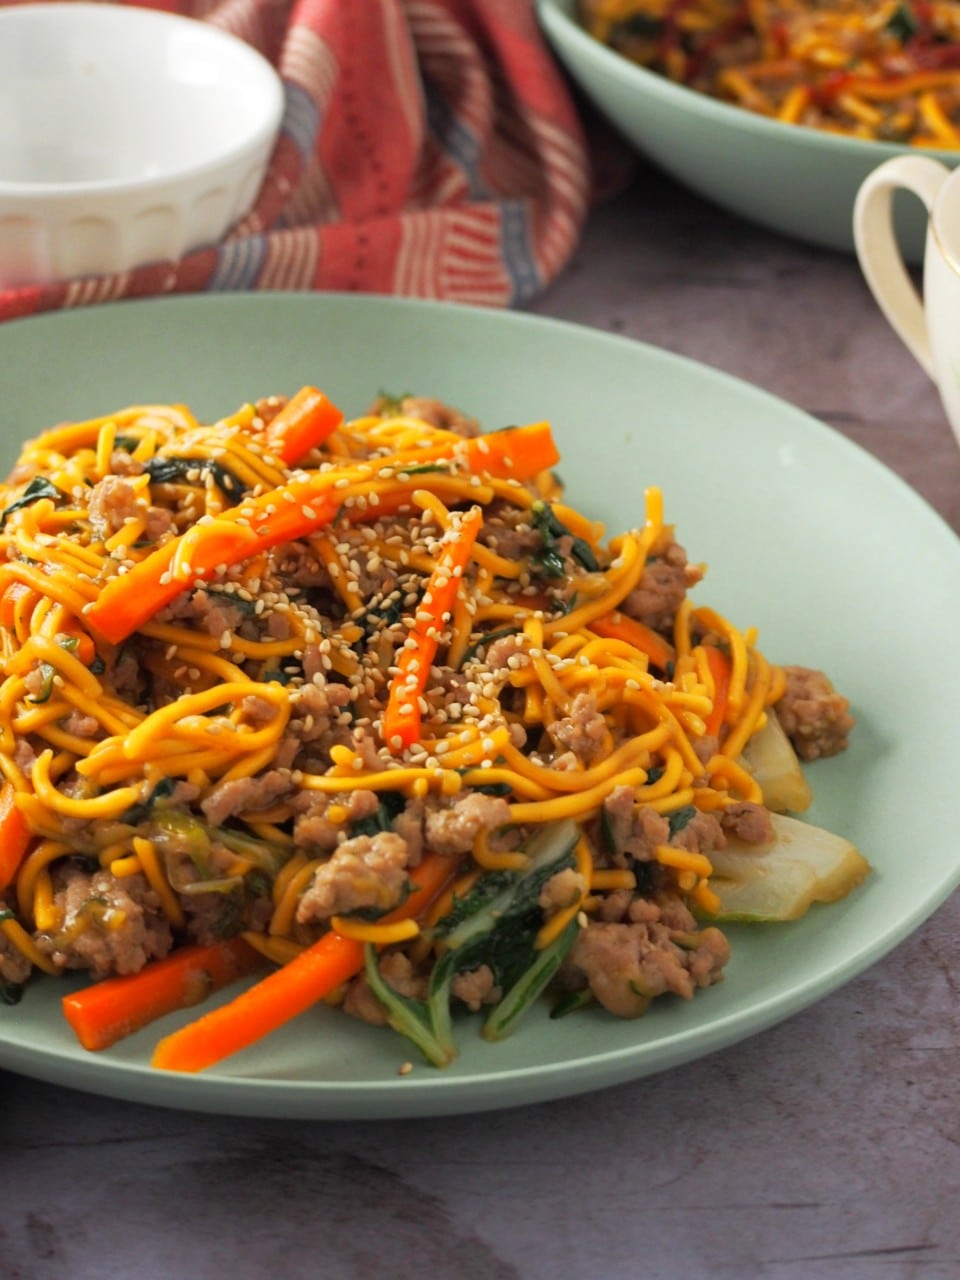 Garlic Pork Chow Mein in a serving dish.